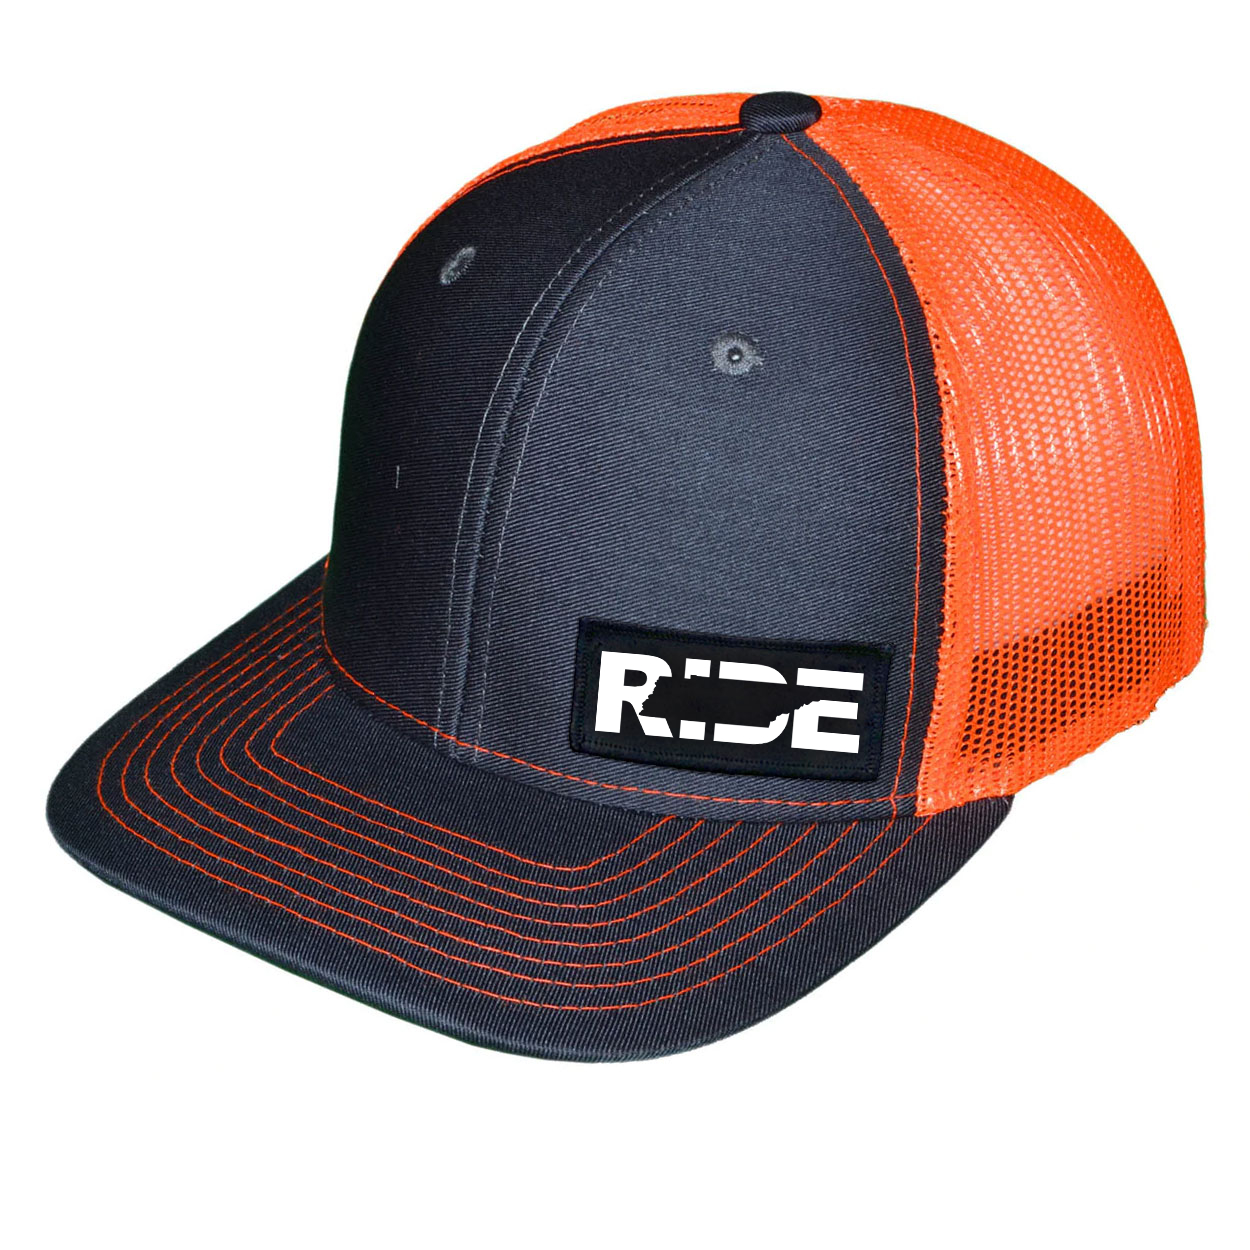 Ride Tennessee Night Out Woven Patch Snapback Trucker Hat Dark Gray/Orange (White Logo)